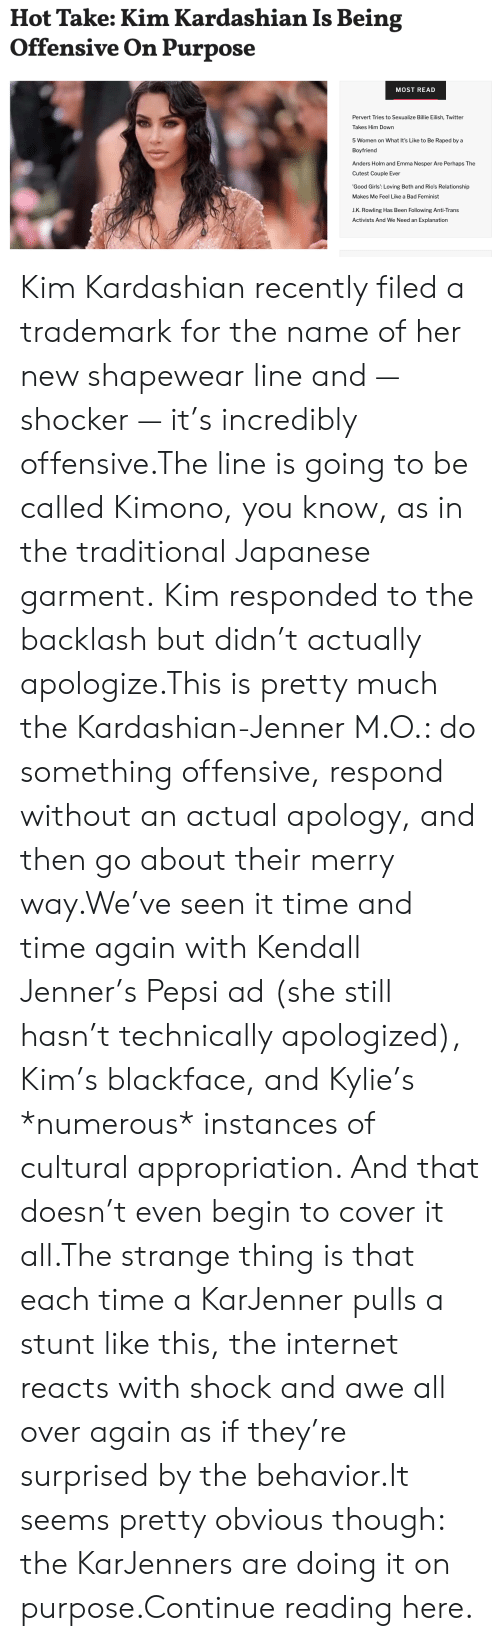 Bad, Girls, and Internet: Hot Take: Kim Kardashian Is Being  Offensive On Purpose  MOST READ  Pervert Tries to Sexualize Billie Eilish, Twitter  Takes Him Down  5 Women on What It's Like to Be Raped by a  Boyfriend  Anders Holm and Emma Nesper Are Perhaps The  Cutest Couple Ever  'Good Girls': Loving Beth and Rio's Relationship  Makes Me Feel Like a Bad Feminist  J.K. Rowling Has Been Following Anti-Trans  Activists And We Need an Explanation Kim Kardashian recently filed a trademark for the name of her new shapewear line and — shocker — it's incredibly offensive.The line is going to be called Kimono, you know, as in the traditional Japanese garment. Kim responded to the backlash but didn't actually apologize.This is pretty much the Kardashian-Jenner M.O.: do something offensive, respond without an actual apology, and then go about their merry way.We've seen it time and time again with Kendall Jenner's Pepsi ad (she still hasn't technically apologized), Kim's blackface, and Kylie's *numerous* instances of cultural appropriation. And that doesn't even begin to cover it all.The strange thing is that each time a KarJenner pulls a stunt like this, the internet reacts with shock and awe all over again as if they're surprised by the behavior.It seems pretty obvious though: the KarJenners are doing it on purpose.Continue reading here.